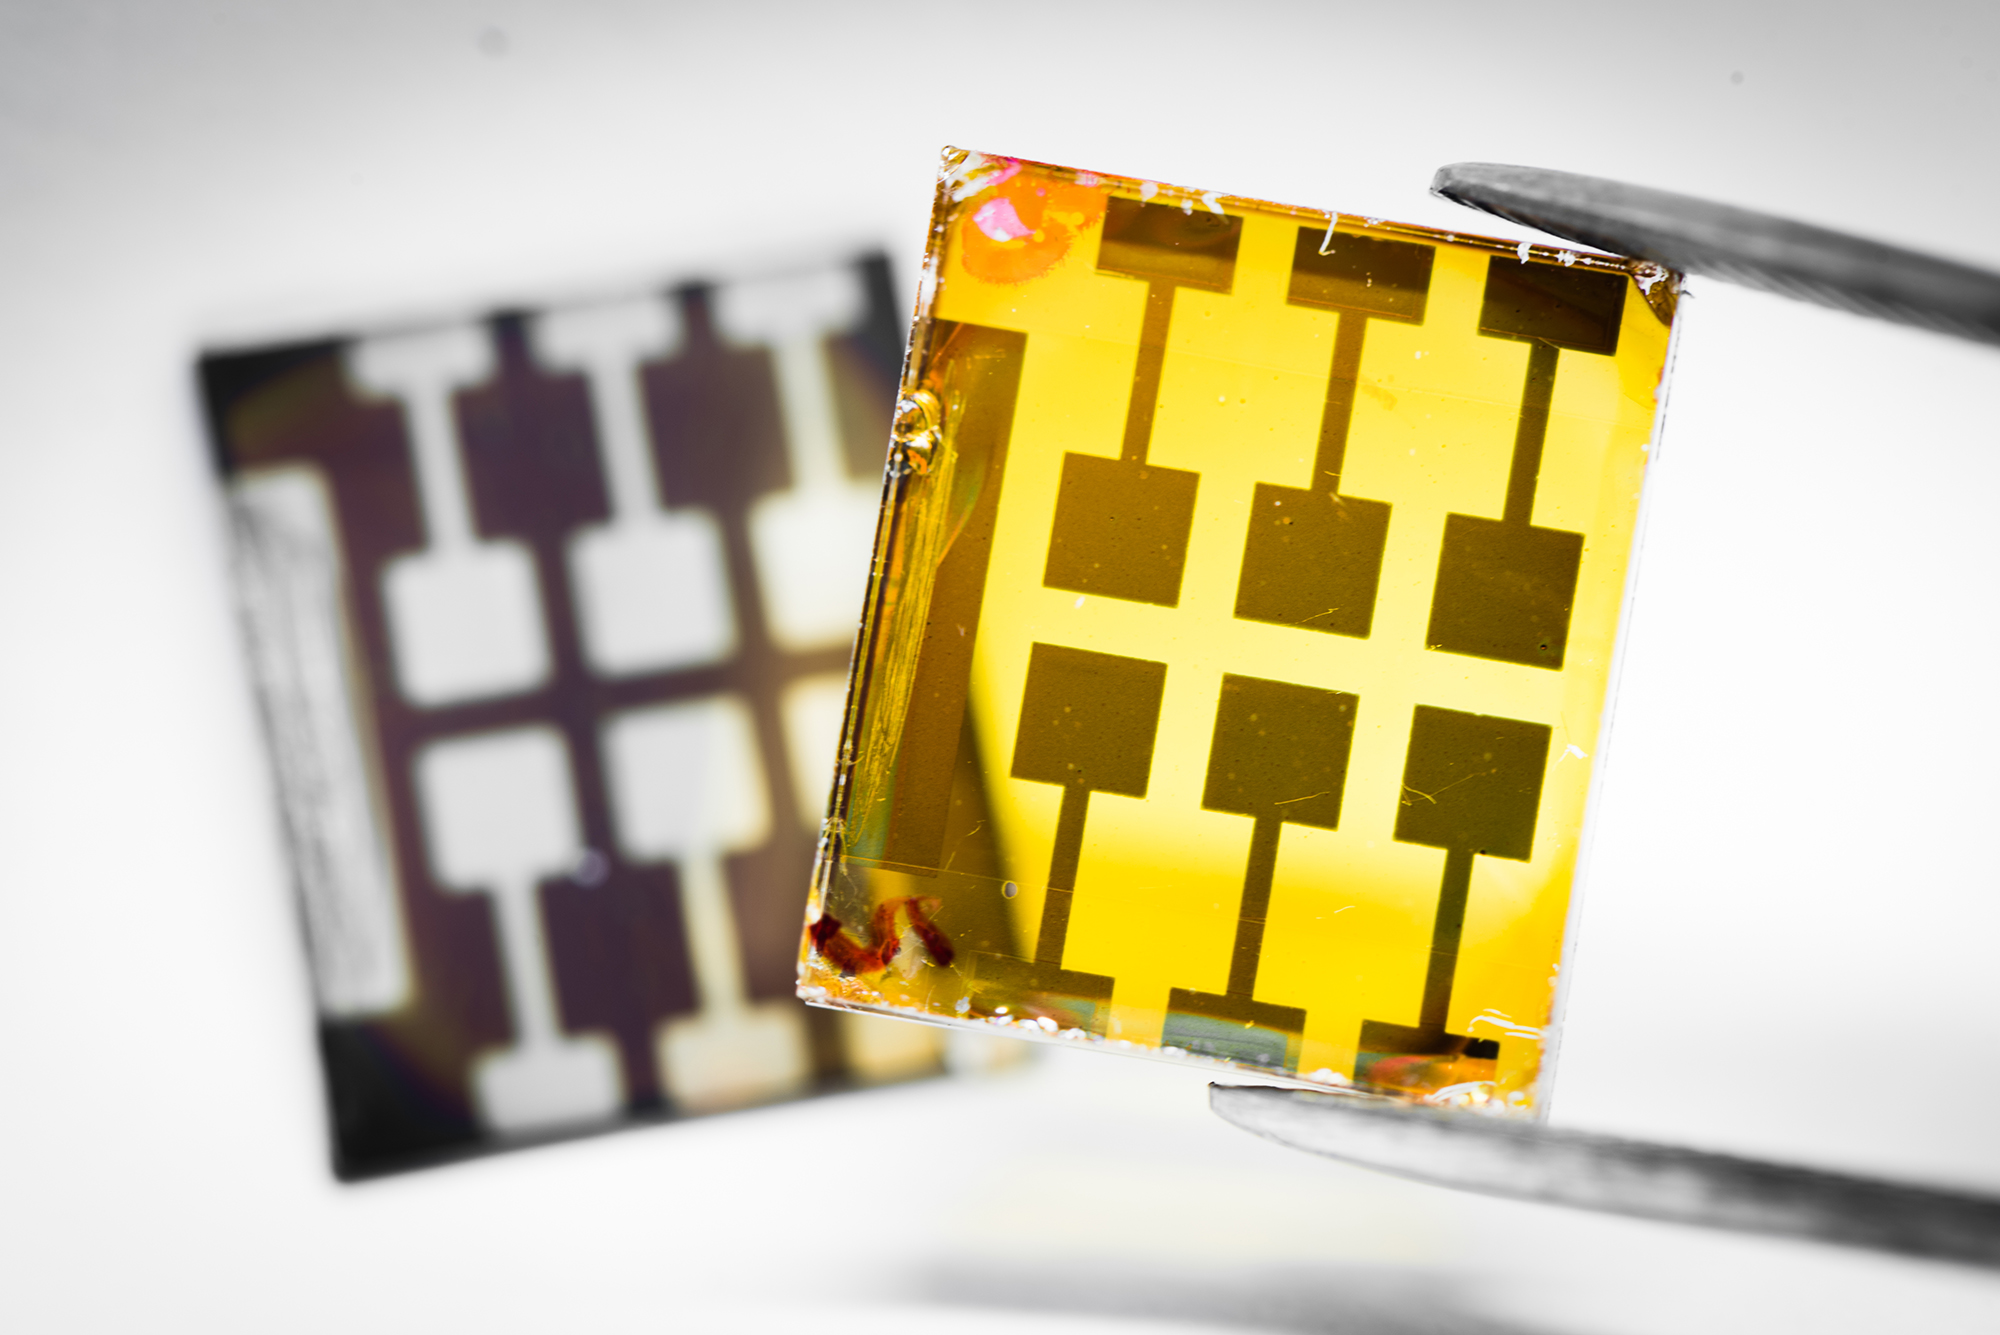 The lead-free double perovskite solar cells (yellow, in the front) compared with the lead-based device (dark, in the background). The next step is tune the color of the double perovskites into dark, so that they can absorb more light for efficient solar cells.